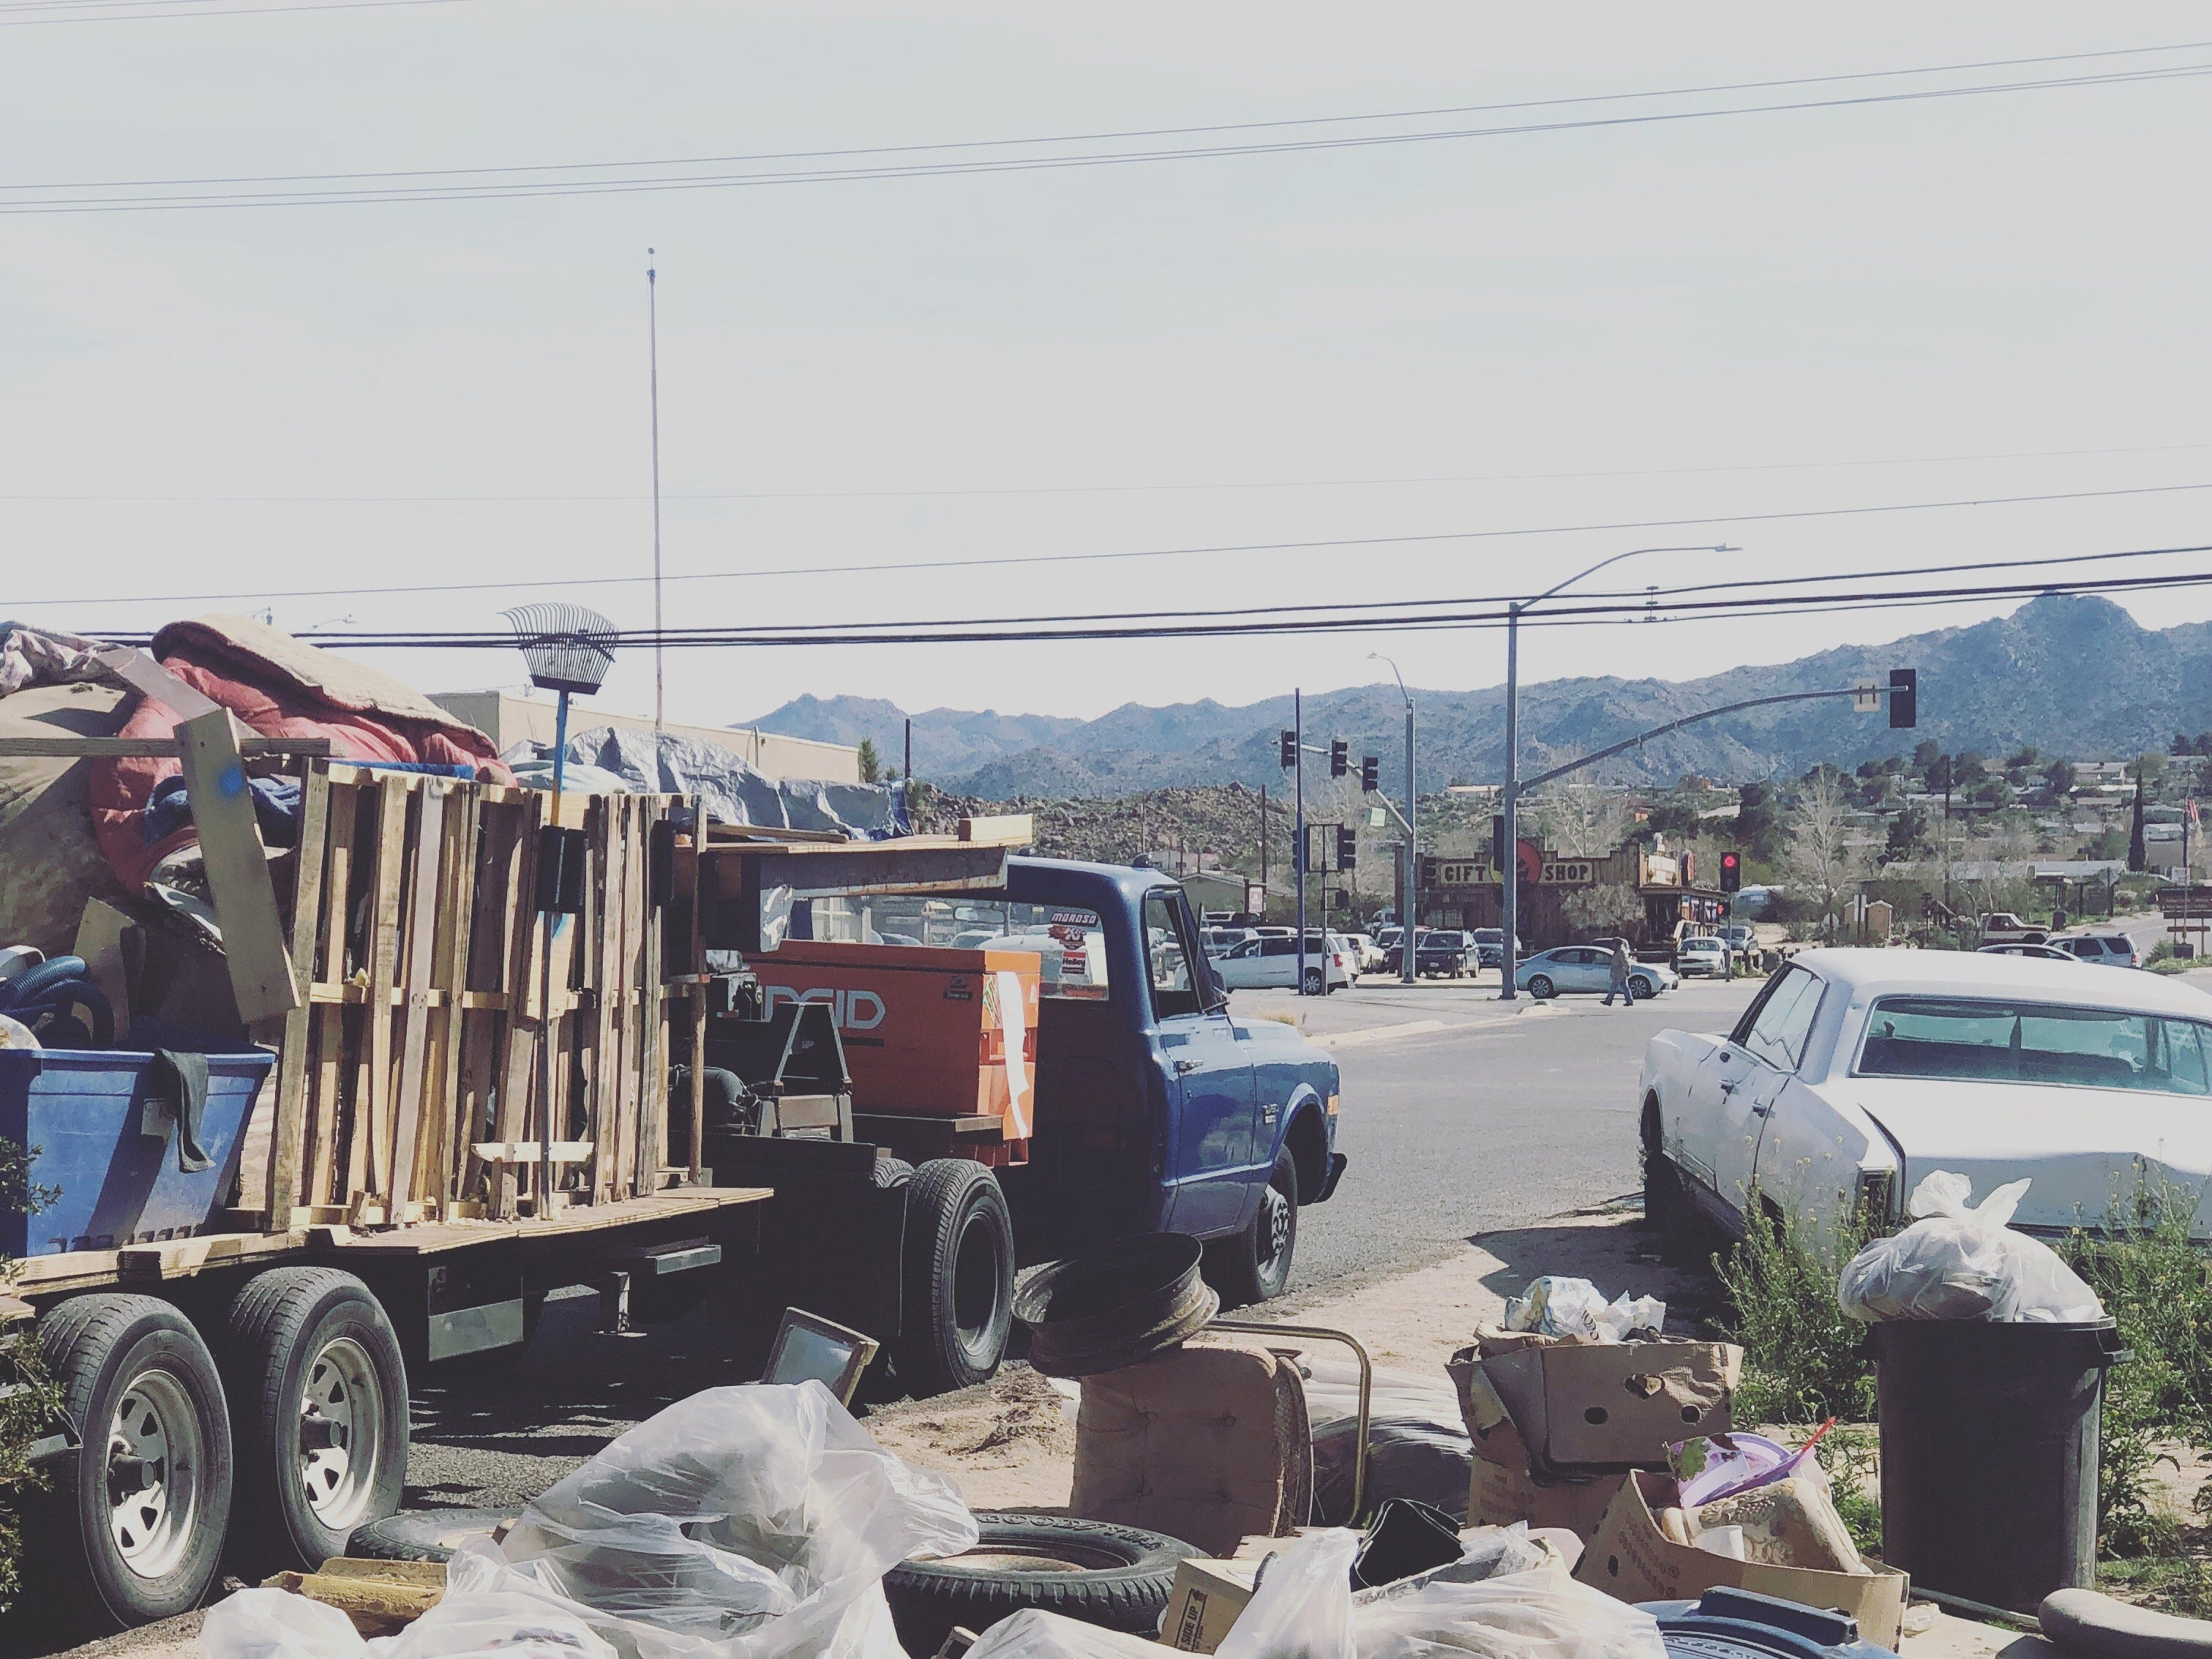 The couple use their low-rider truck and trailer to pick up trash bags and discarded materials throughout Joshua Tree, Landers and Johnson Valley.